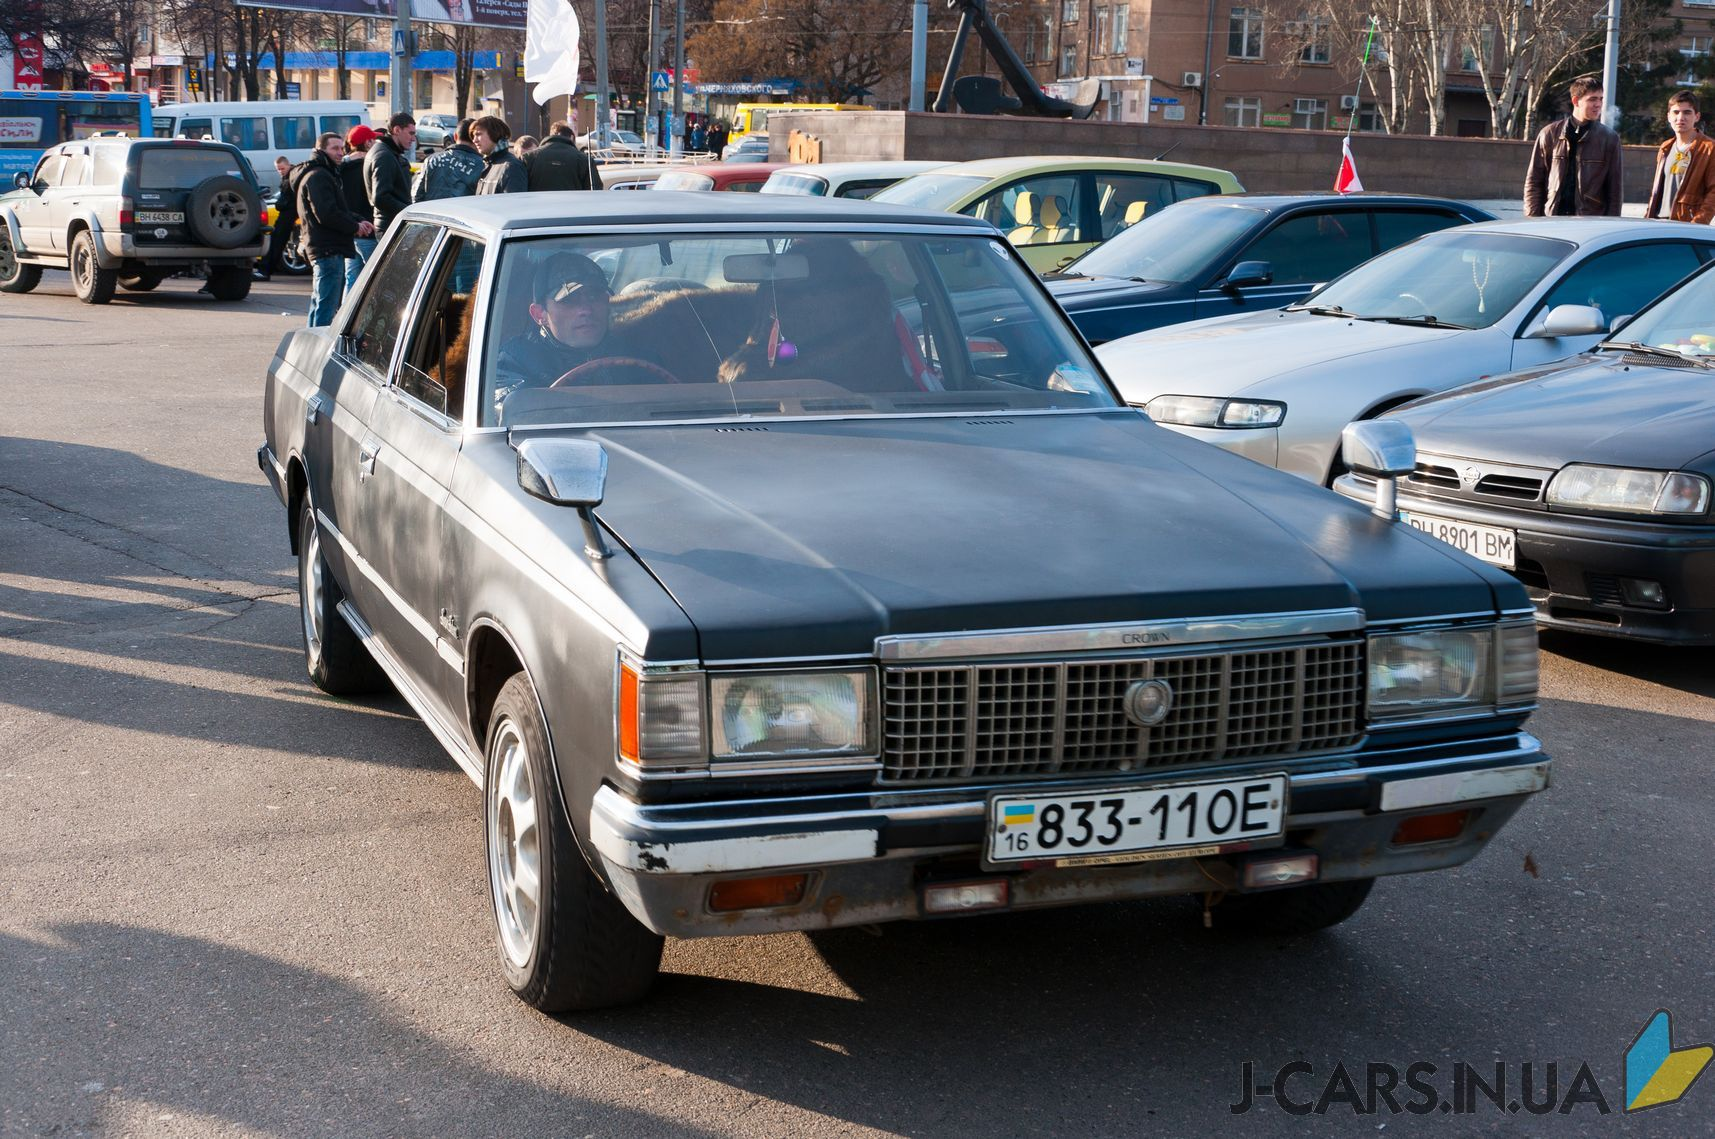 j-cars.in.ua сбор 2012